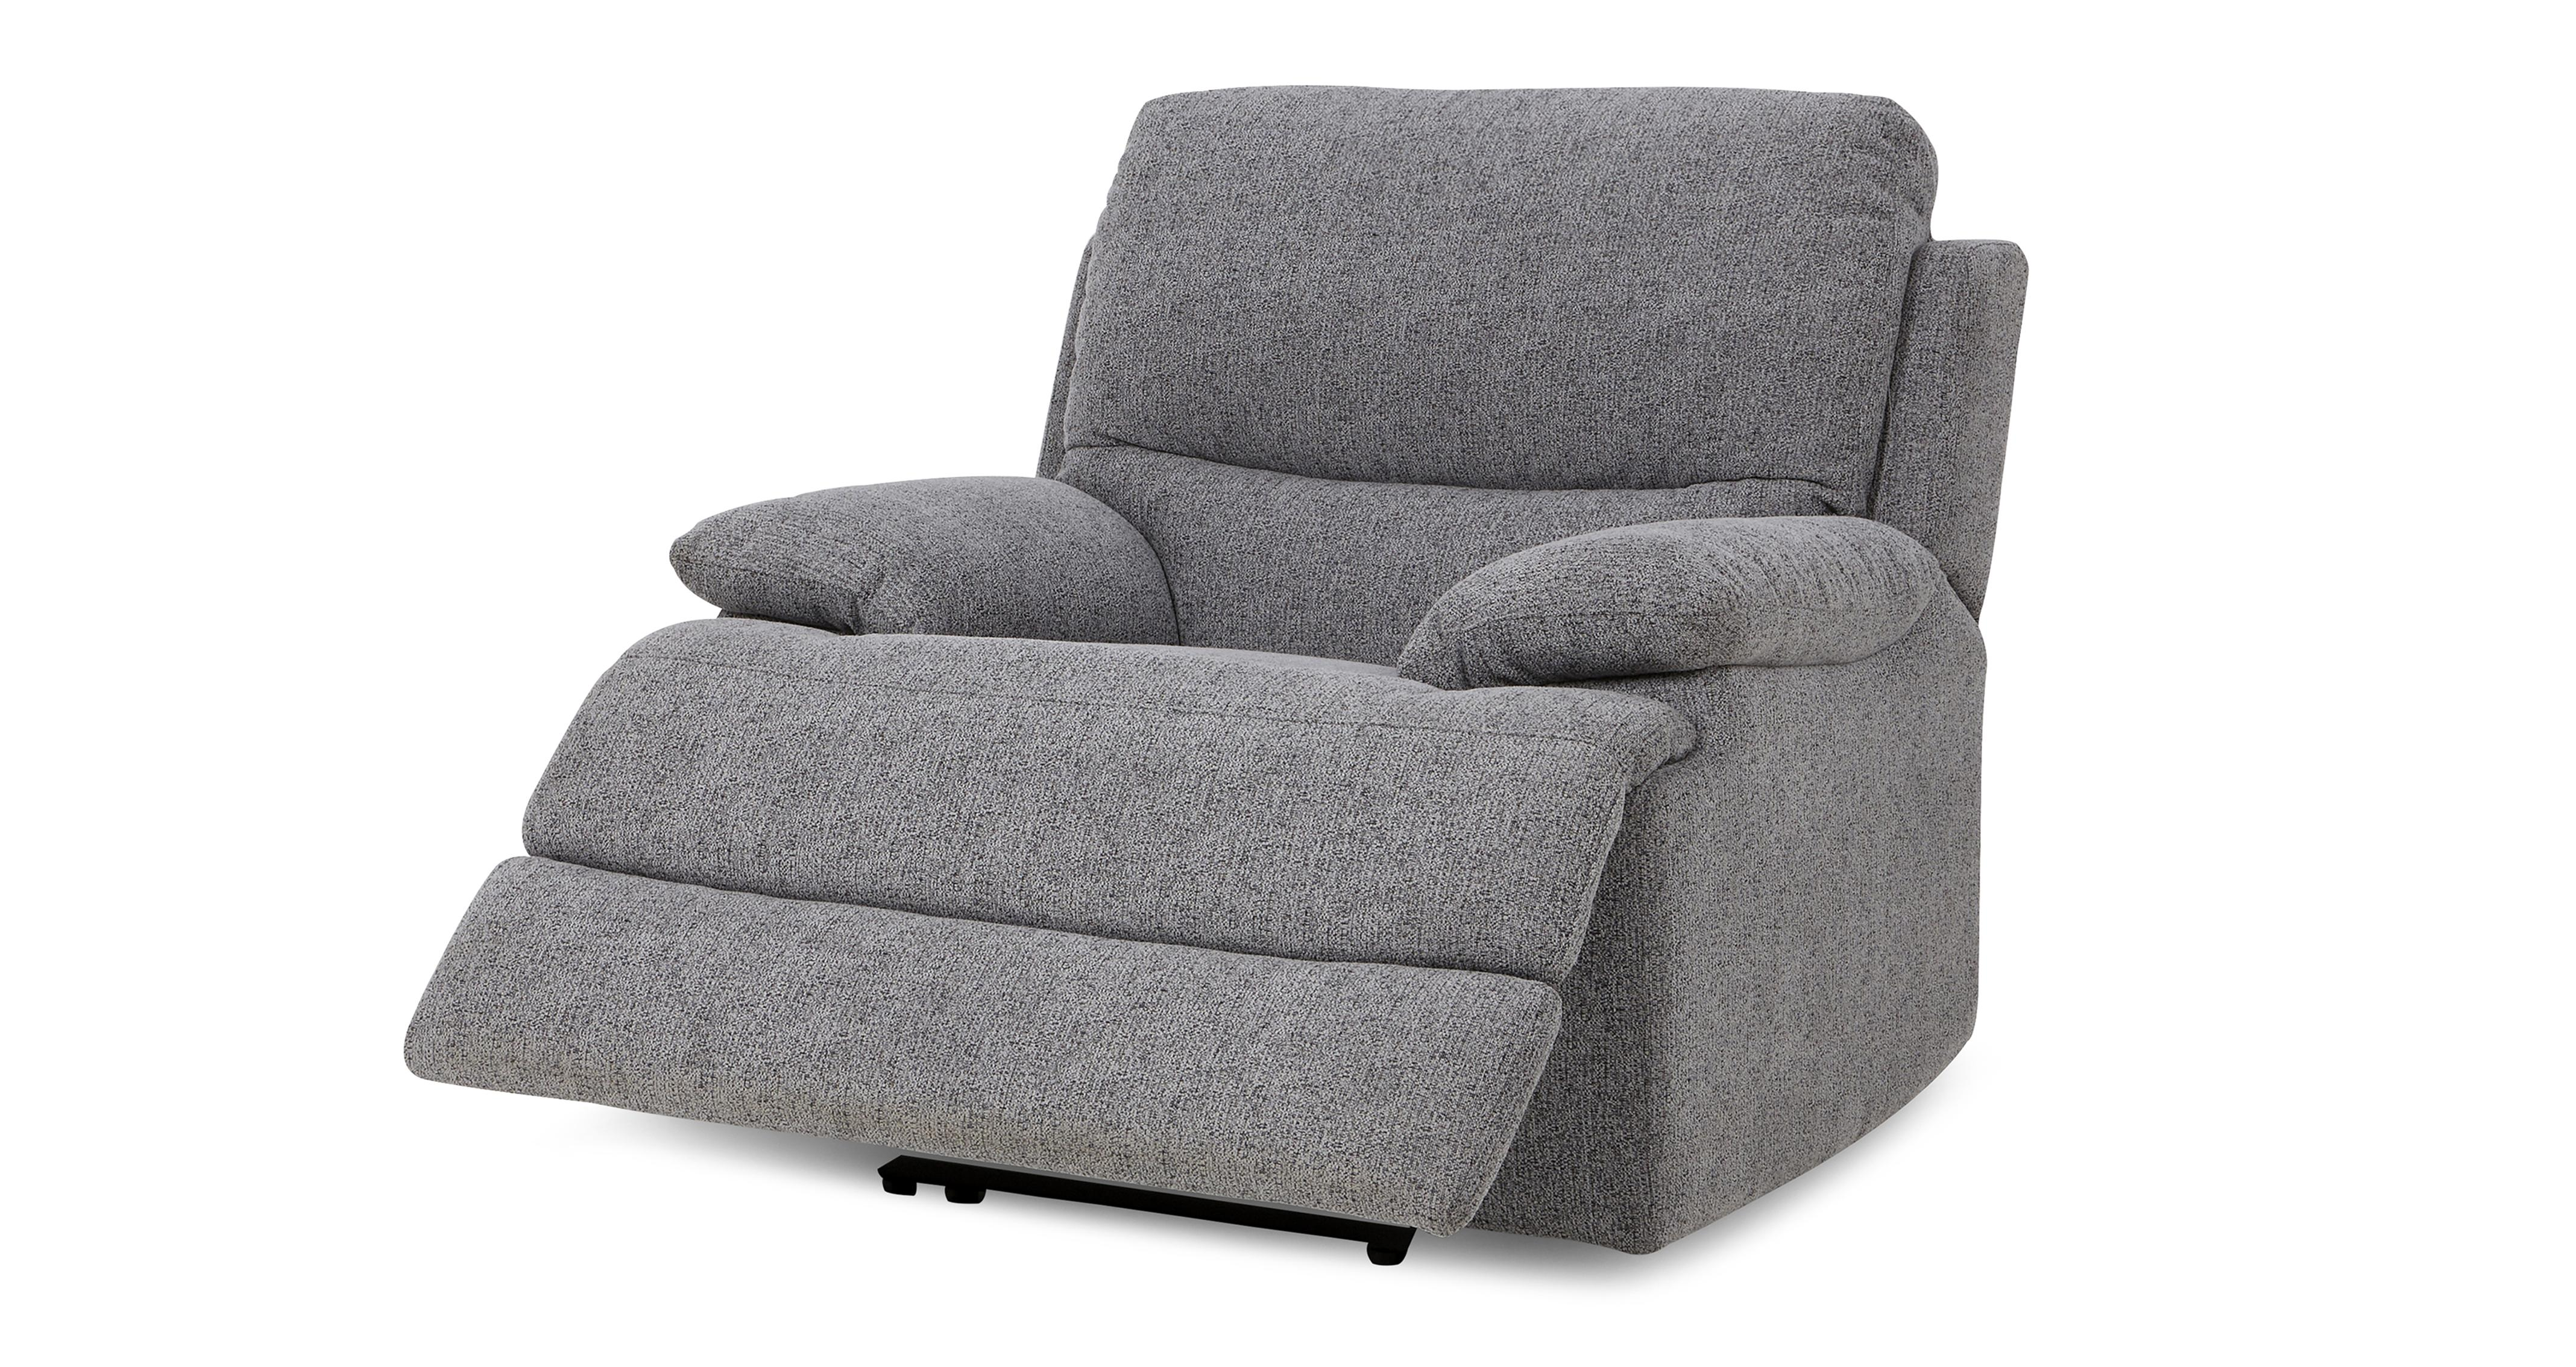 Small Bedroom Recliners Recliner Chairs In A Range Of Styles For Your Home Dfs